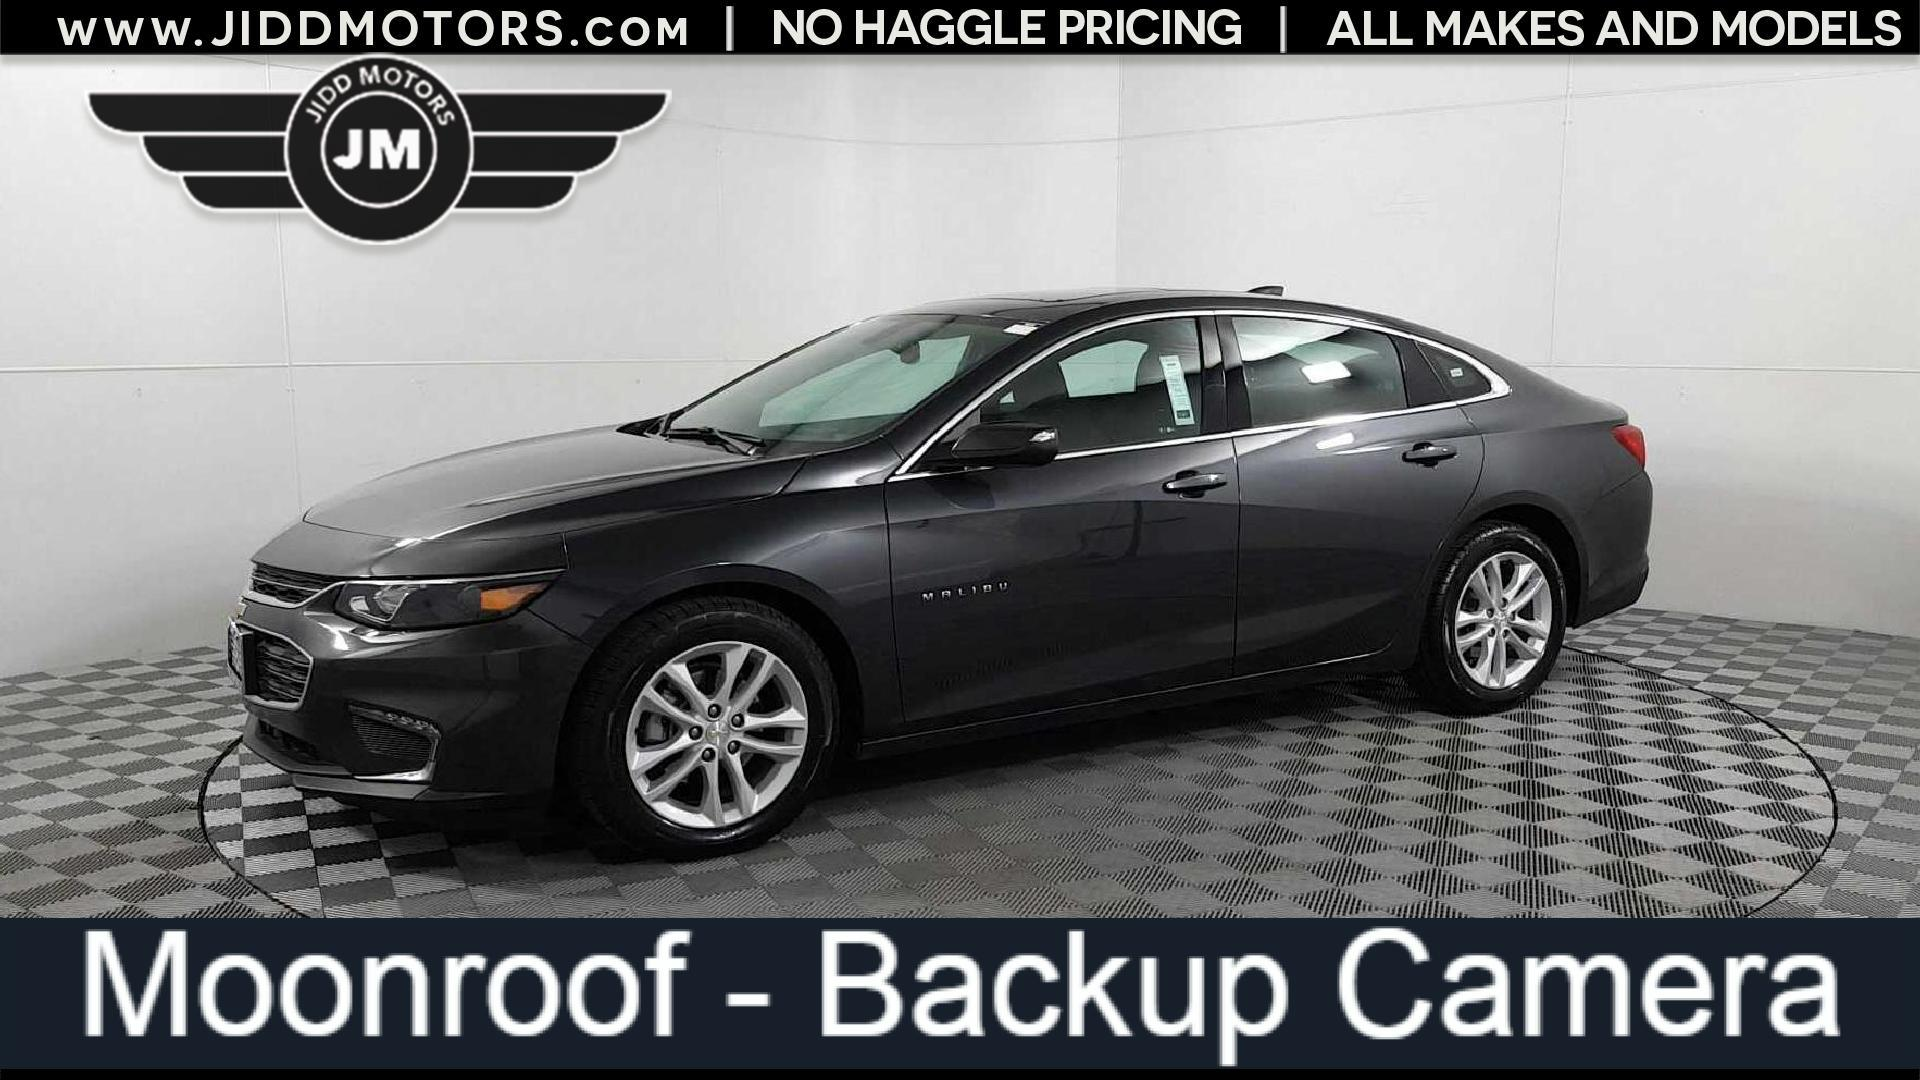 2018 Chevrolet Malibu LT 1LT Sunroof